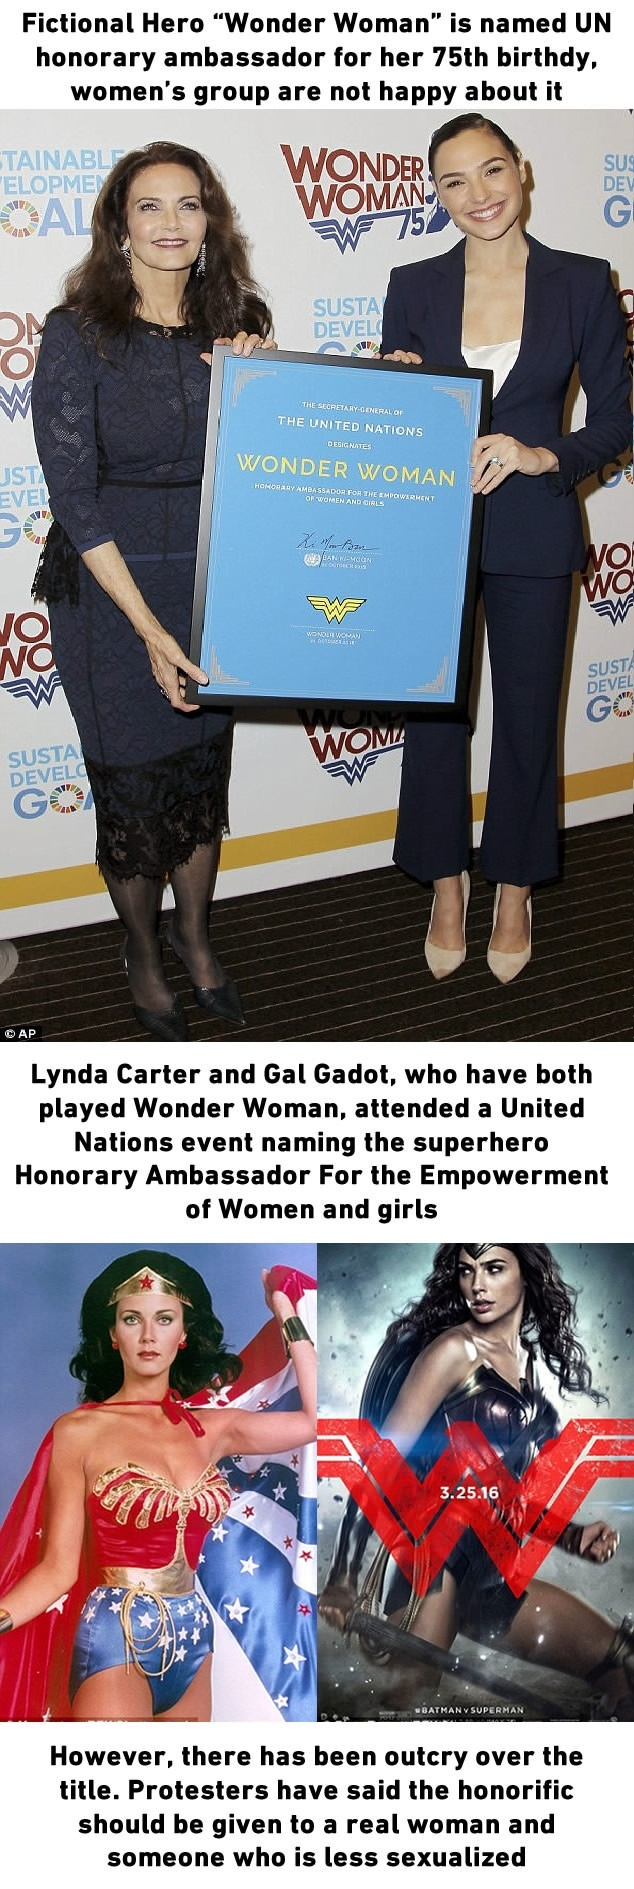 Wonder Woman named UN Honorary Ambassador